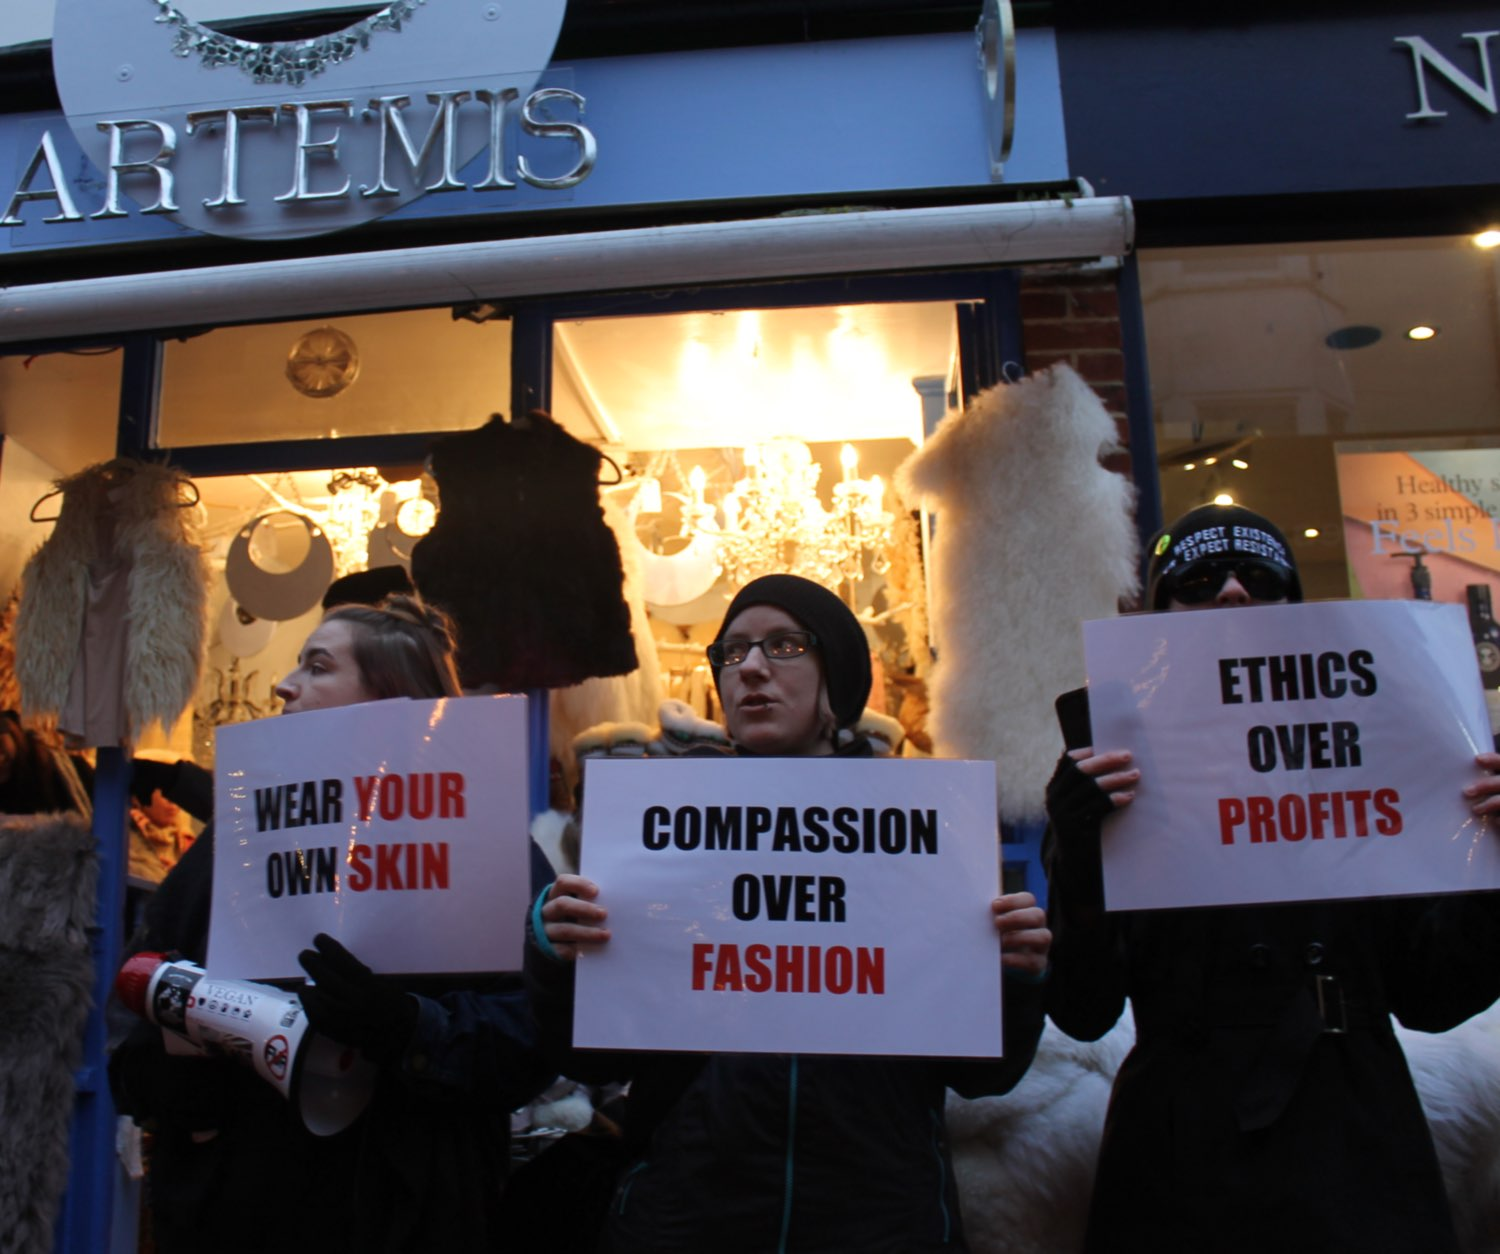 artemis-brighton-leather-dxe-activits-protest